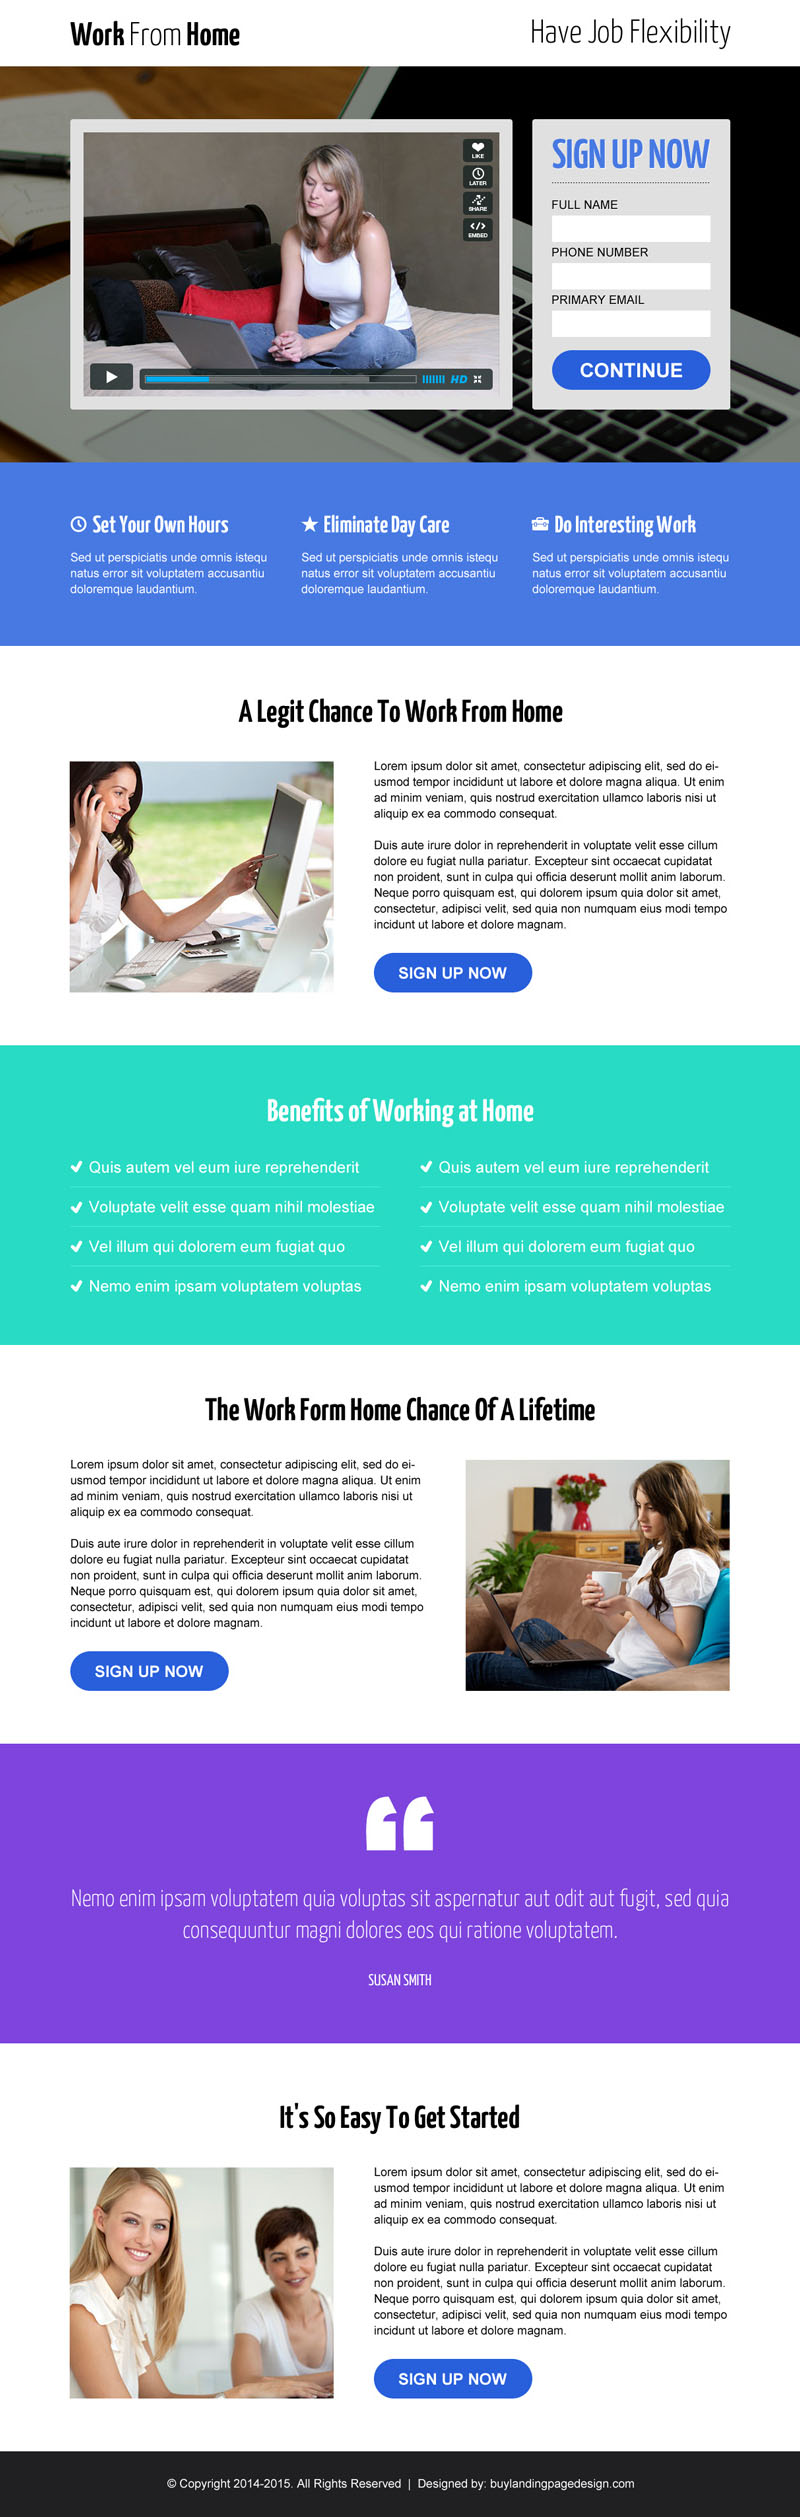 work from home video lead capture responsive landing page design template https://www.buylandingpagedesign.com/buy/work-from-home-video-lead-capture-responsive-landing-page-design-template/1428